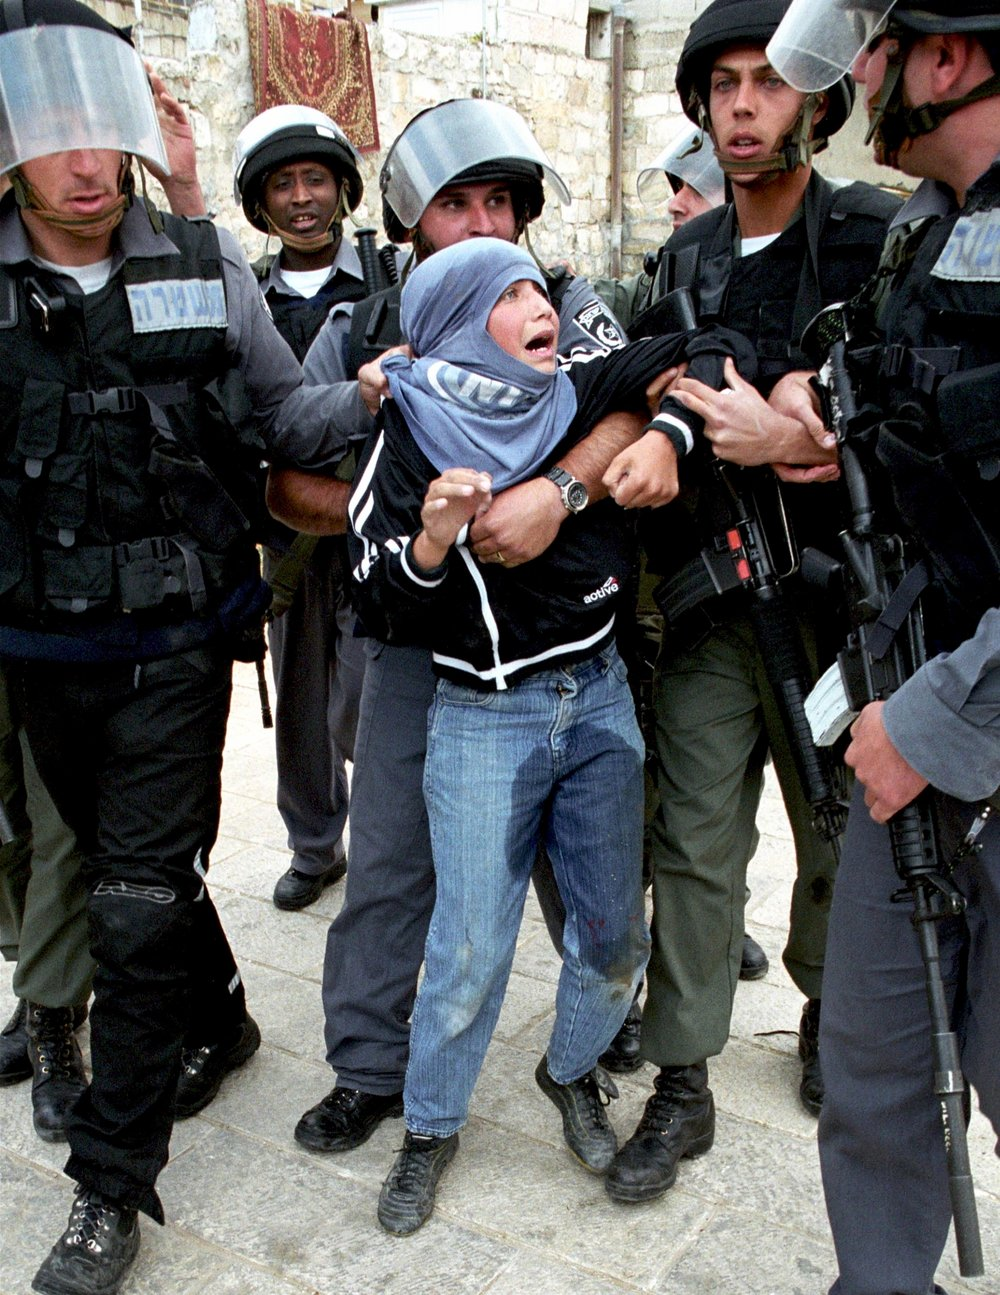 A Palestinian boy wets his pants as he is arrested by Israeli police for throwing stones during clashes with Israeli forces following Friday Muslim prayers in east Jerusalem.